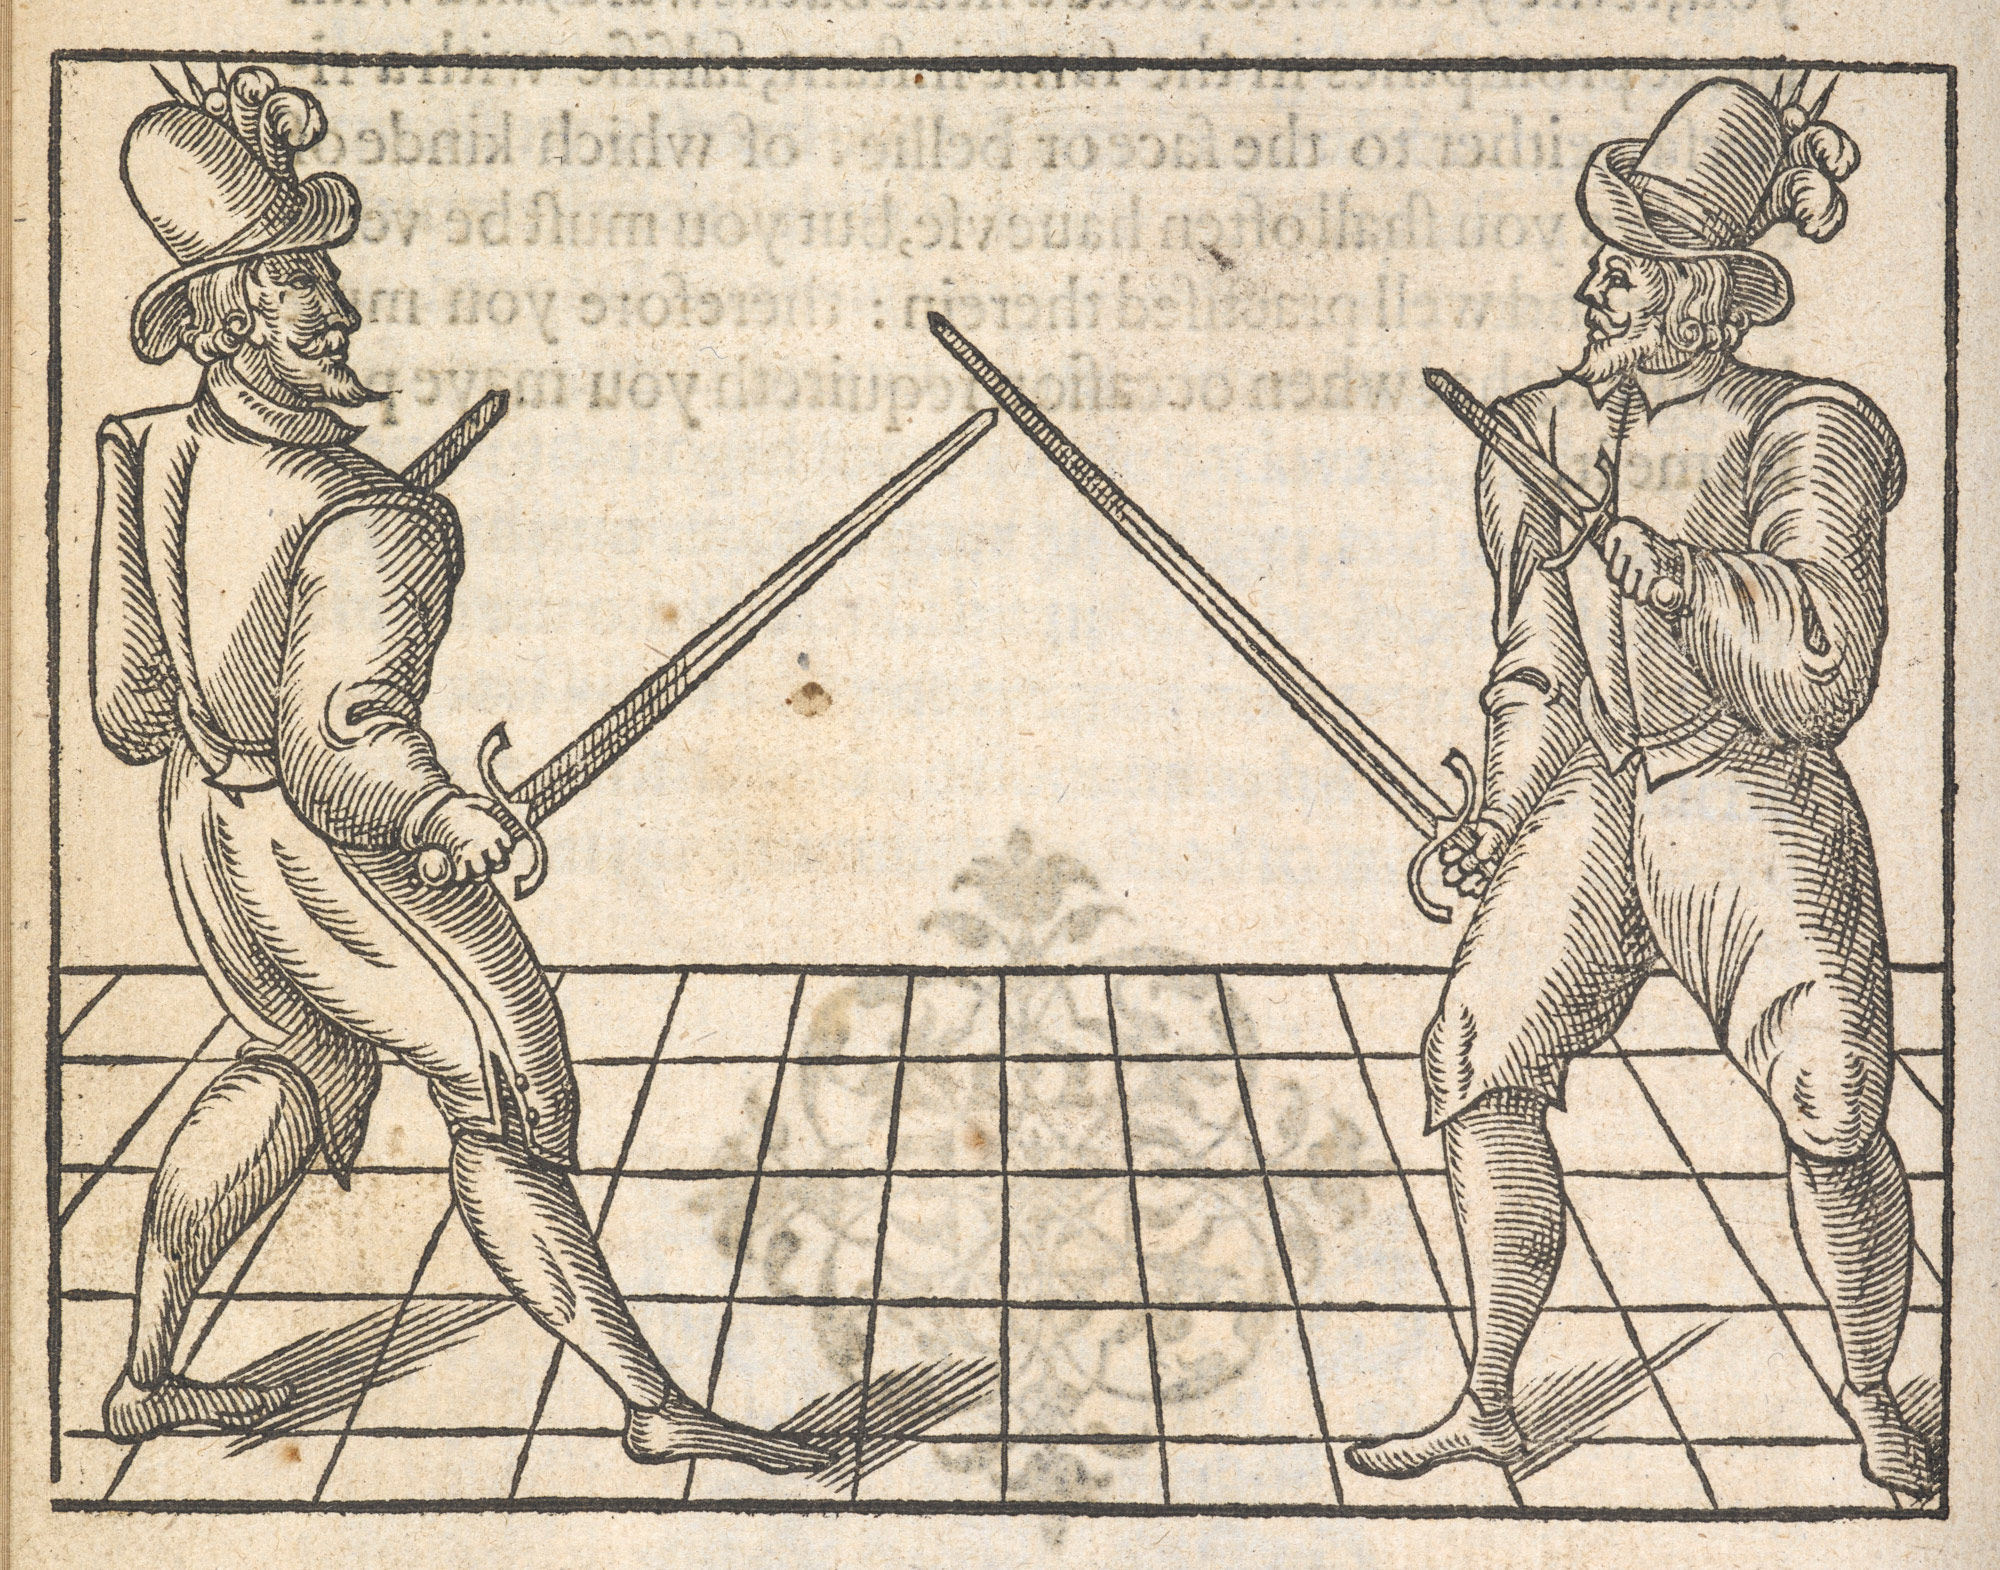 Elizabethan fencing manual